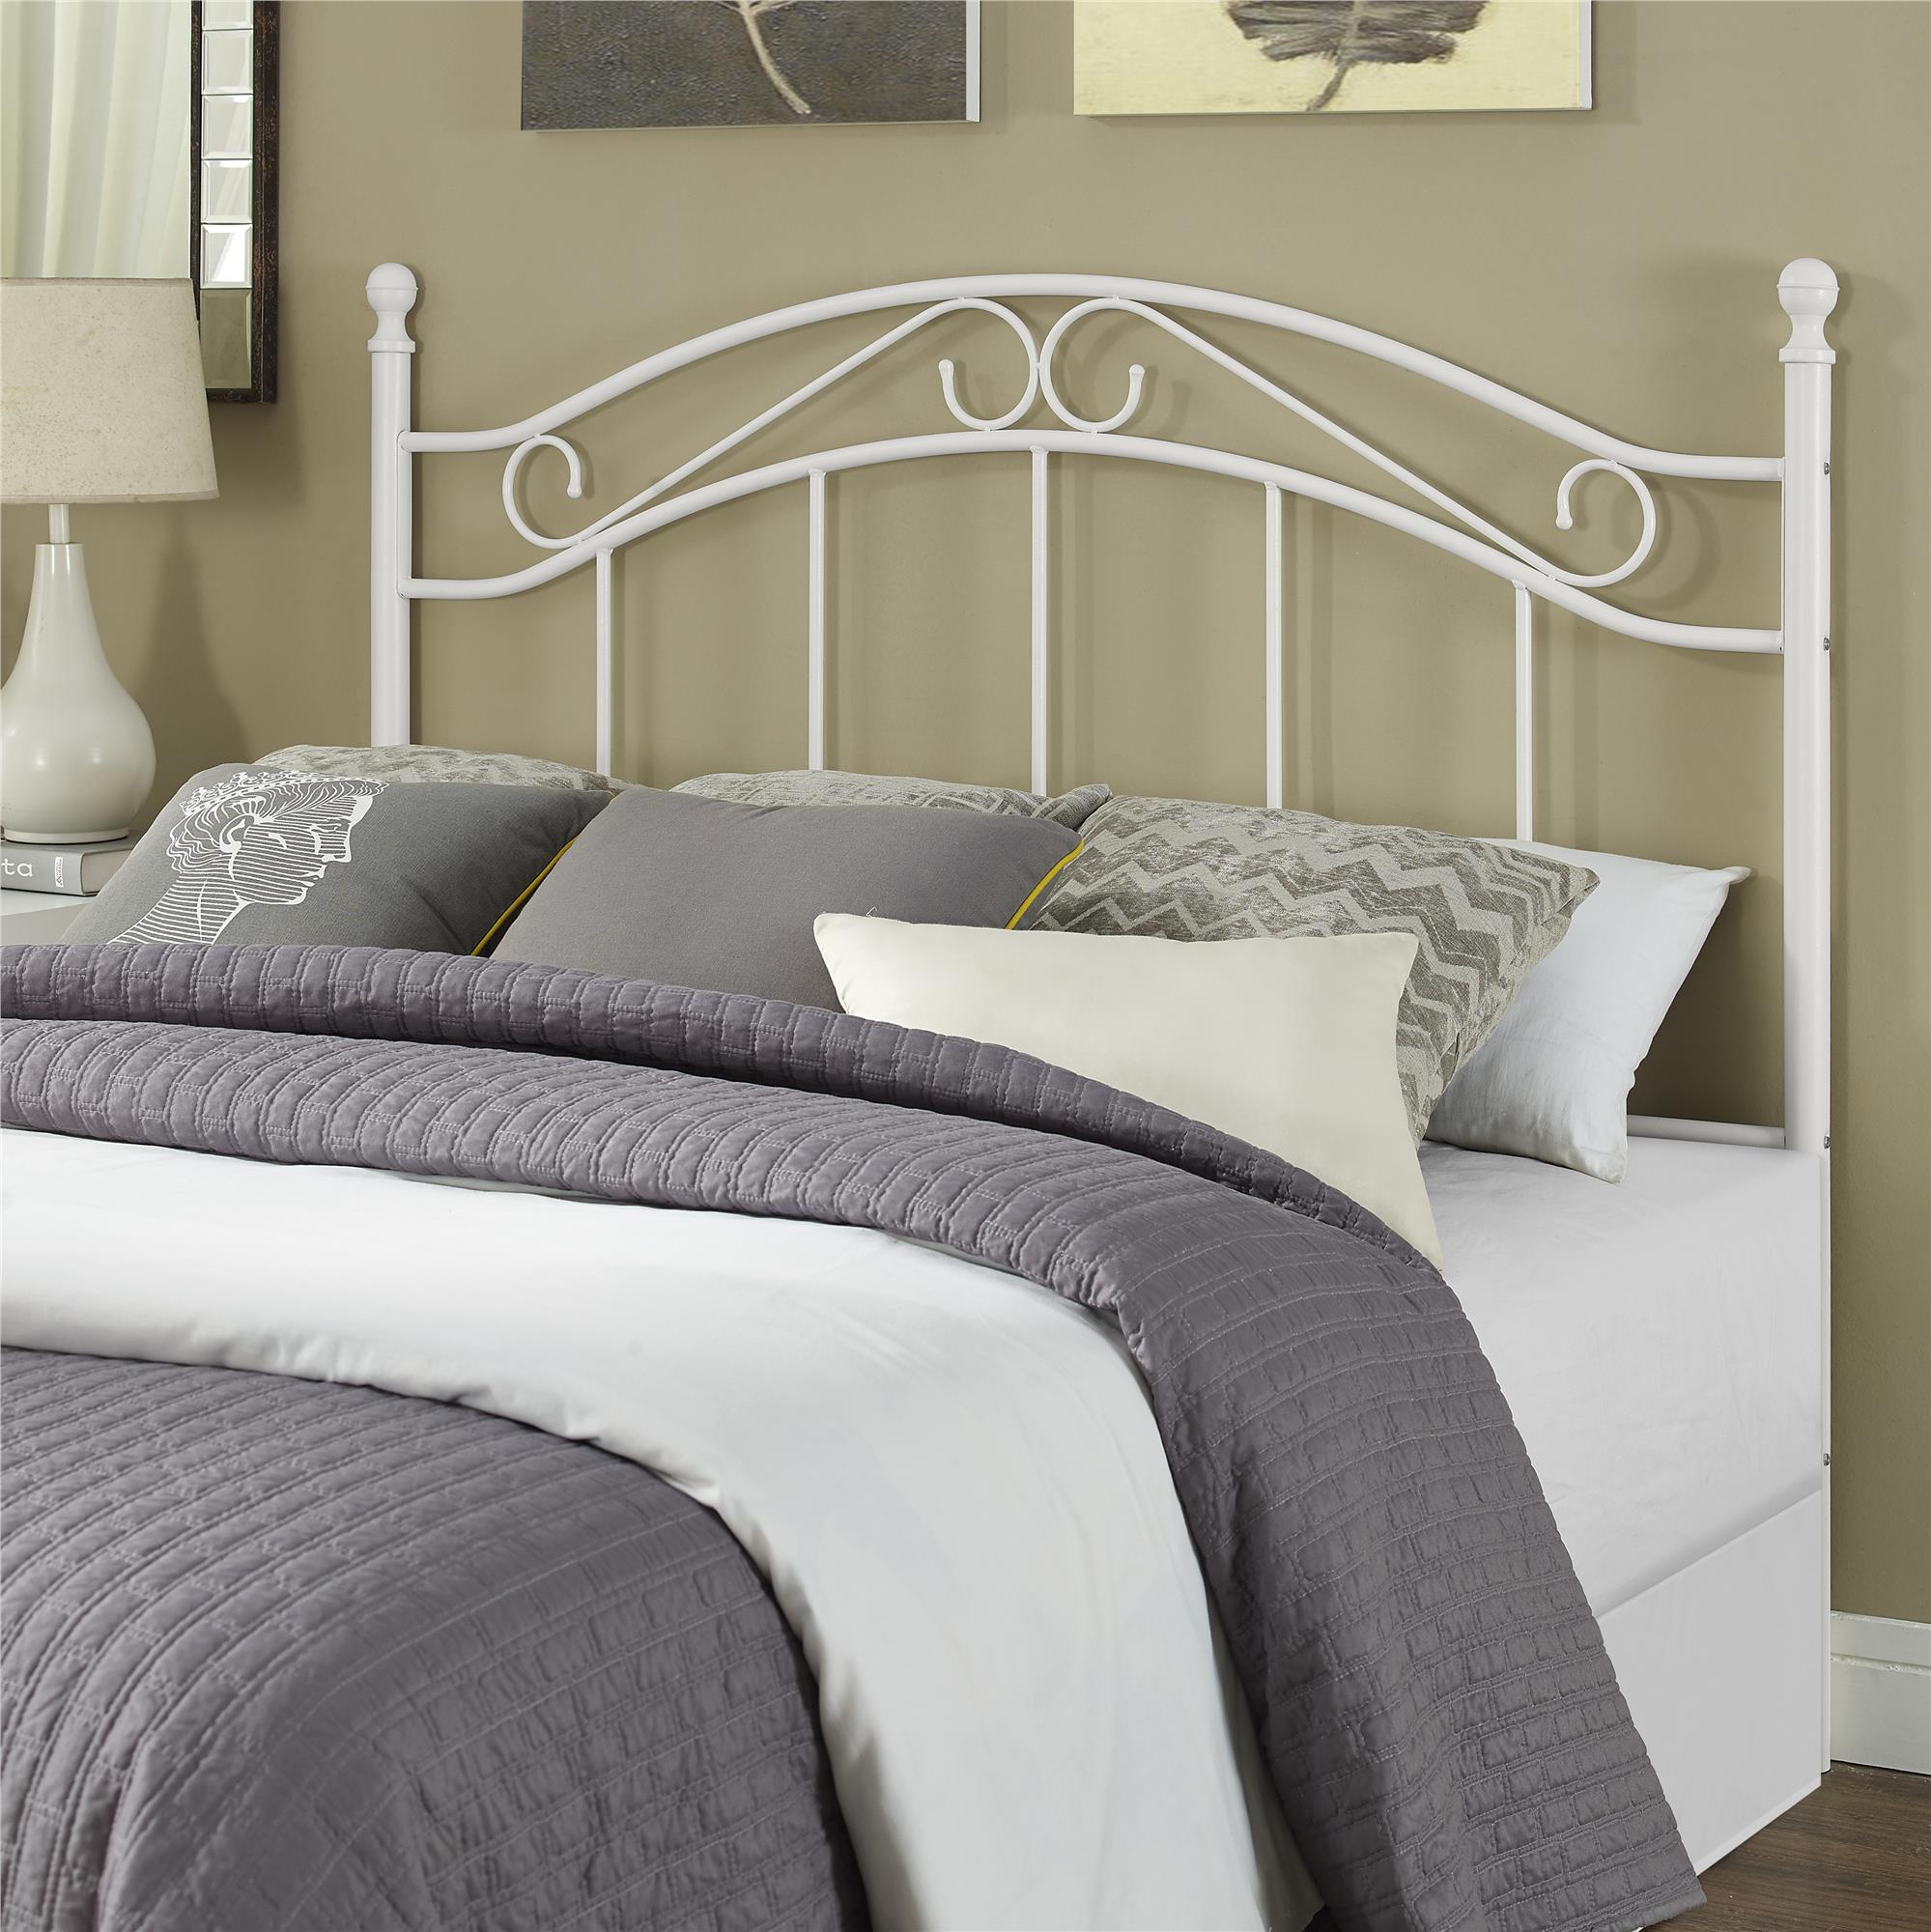 mainstays full queen metal headboard with delicate detailing white